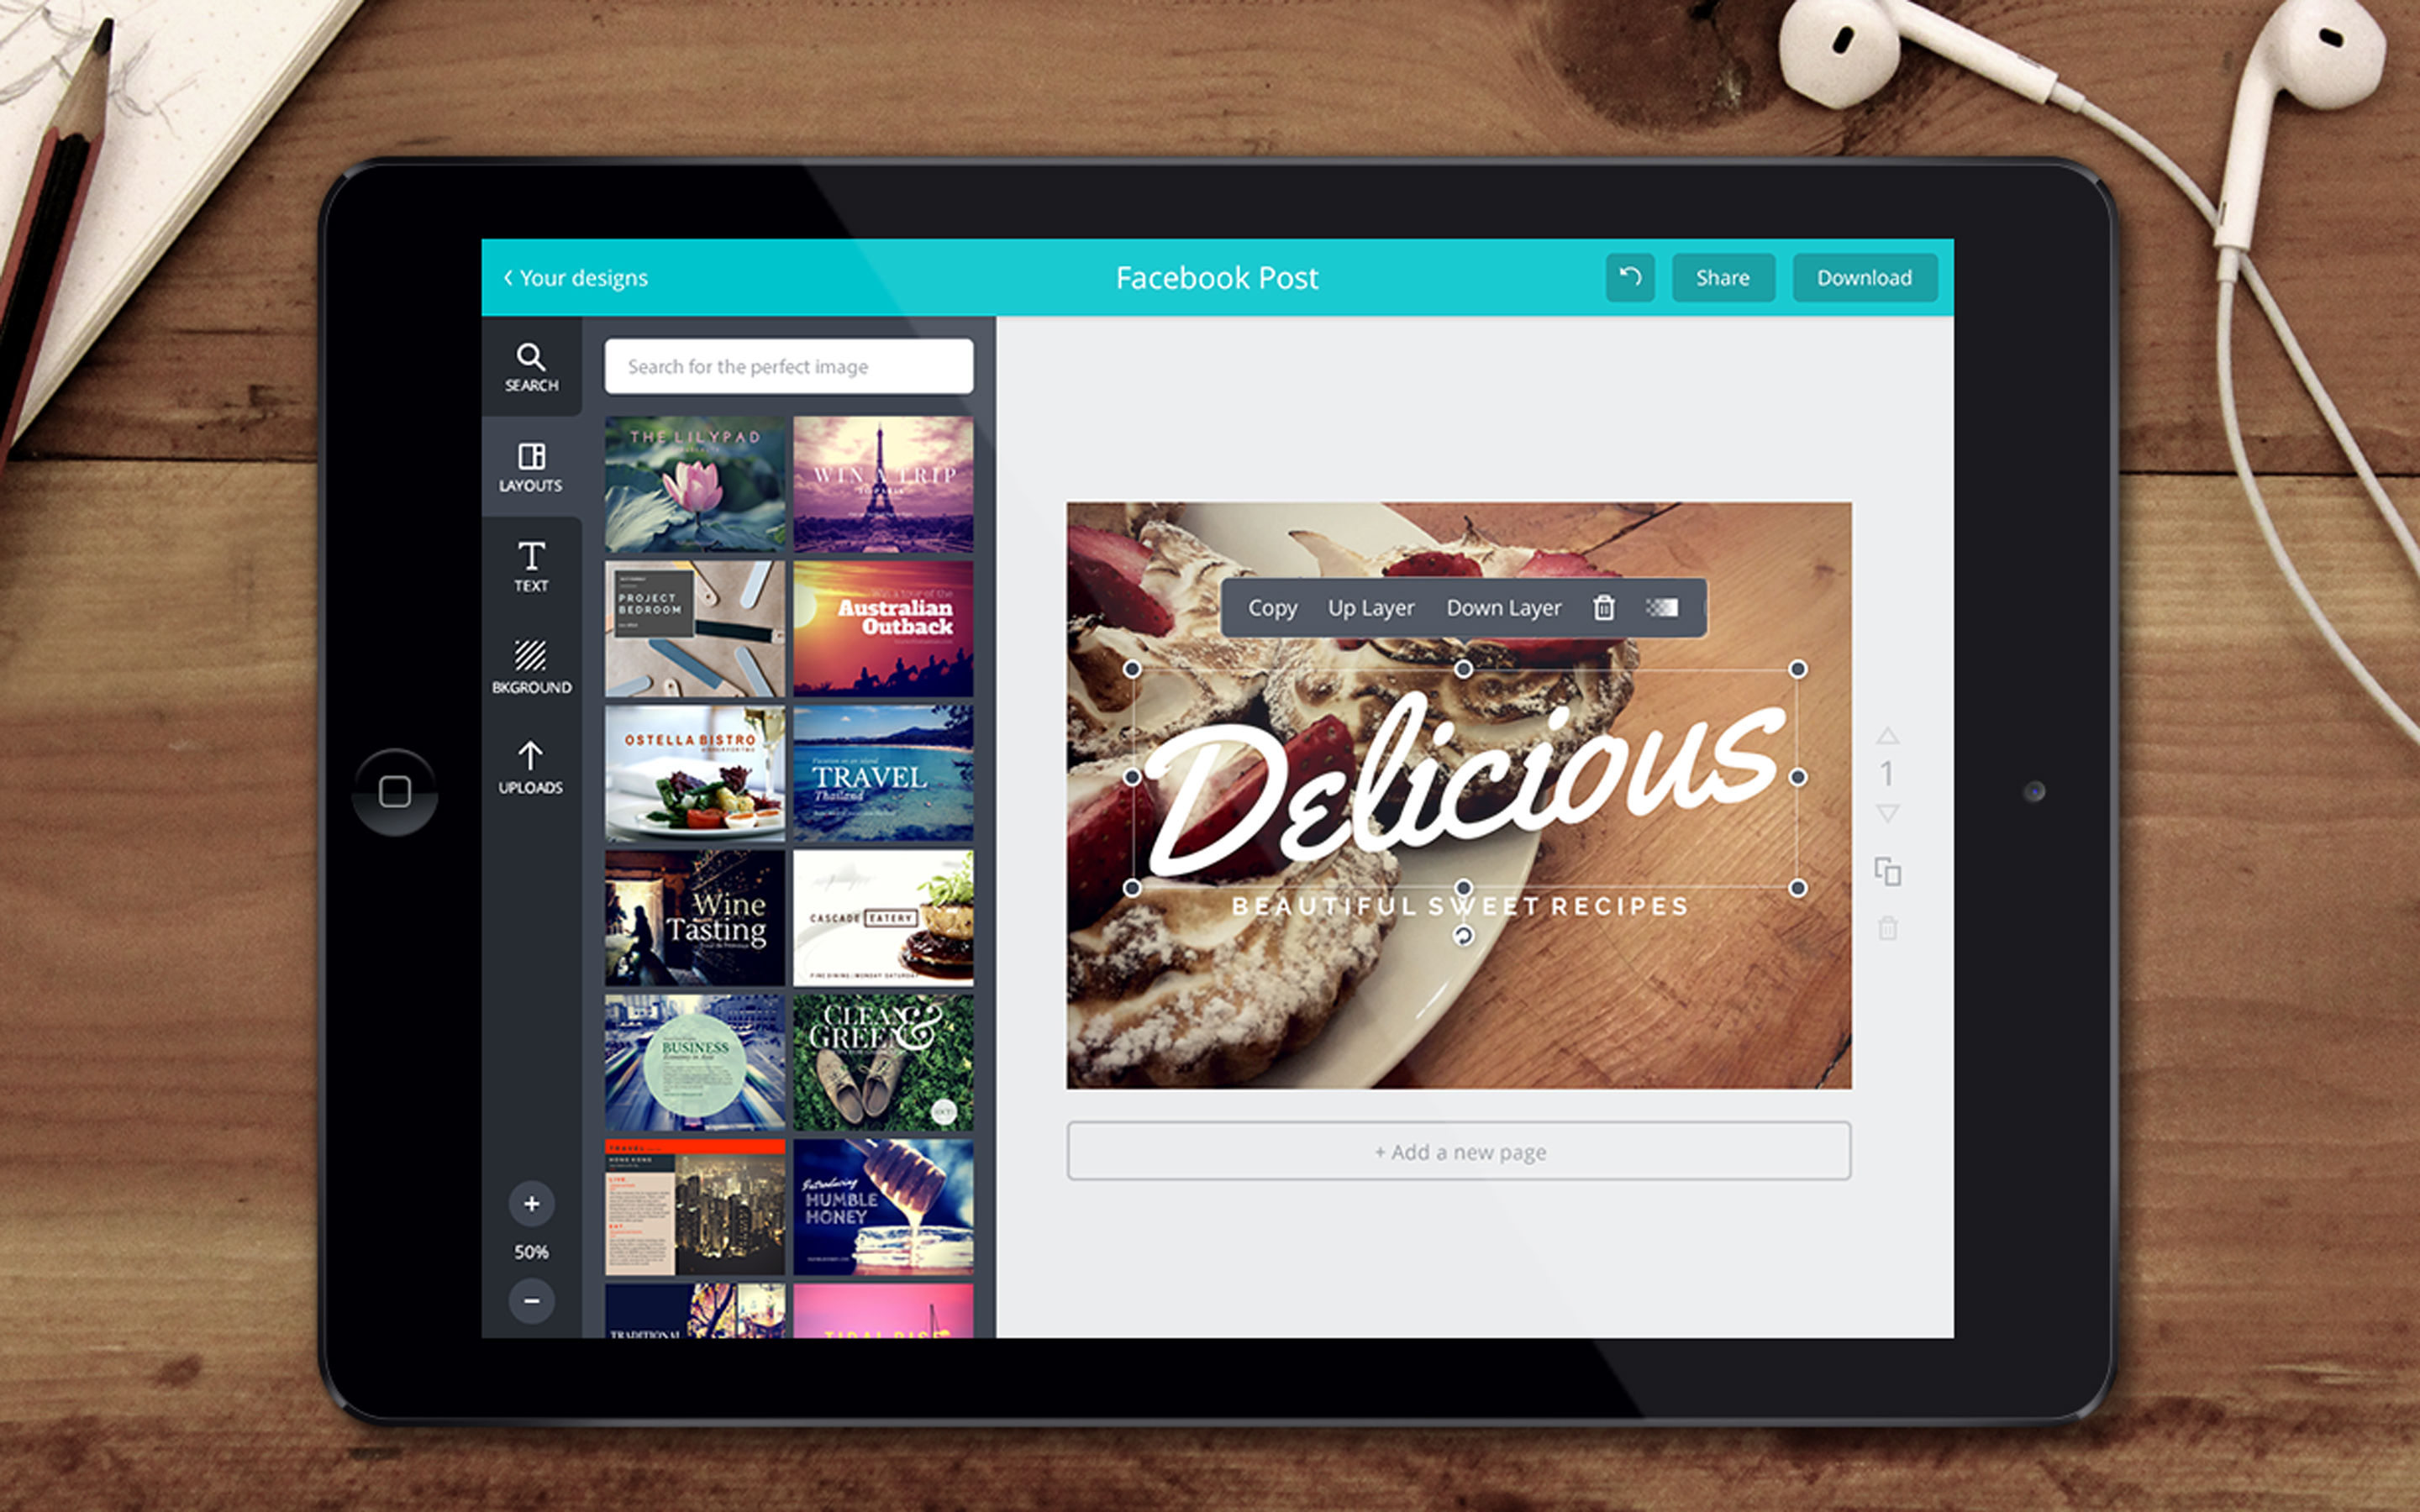 Canva screenshot: Upload custom images to the editor or choose from Canva's extensive library of images